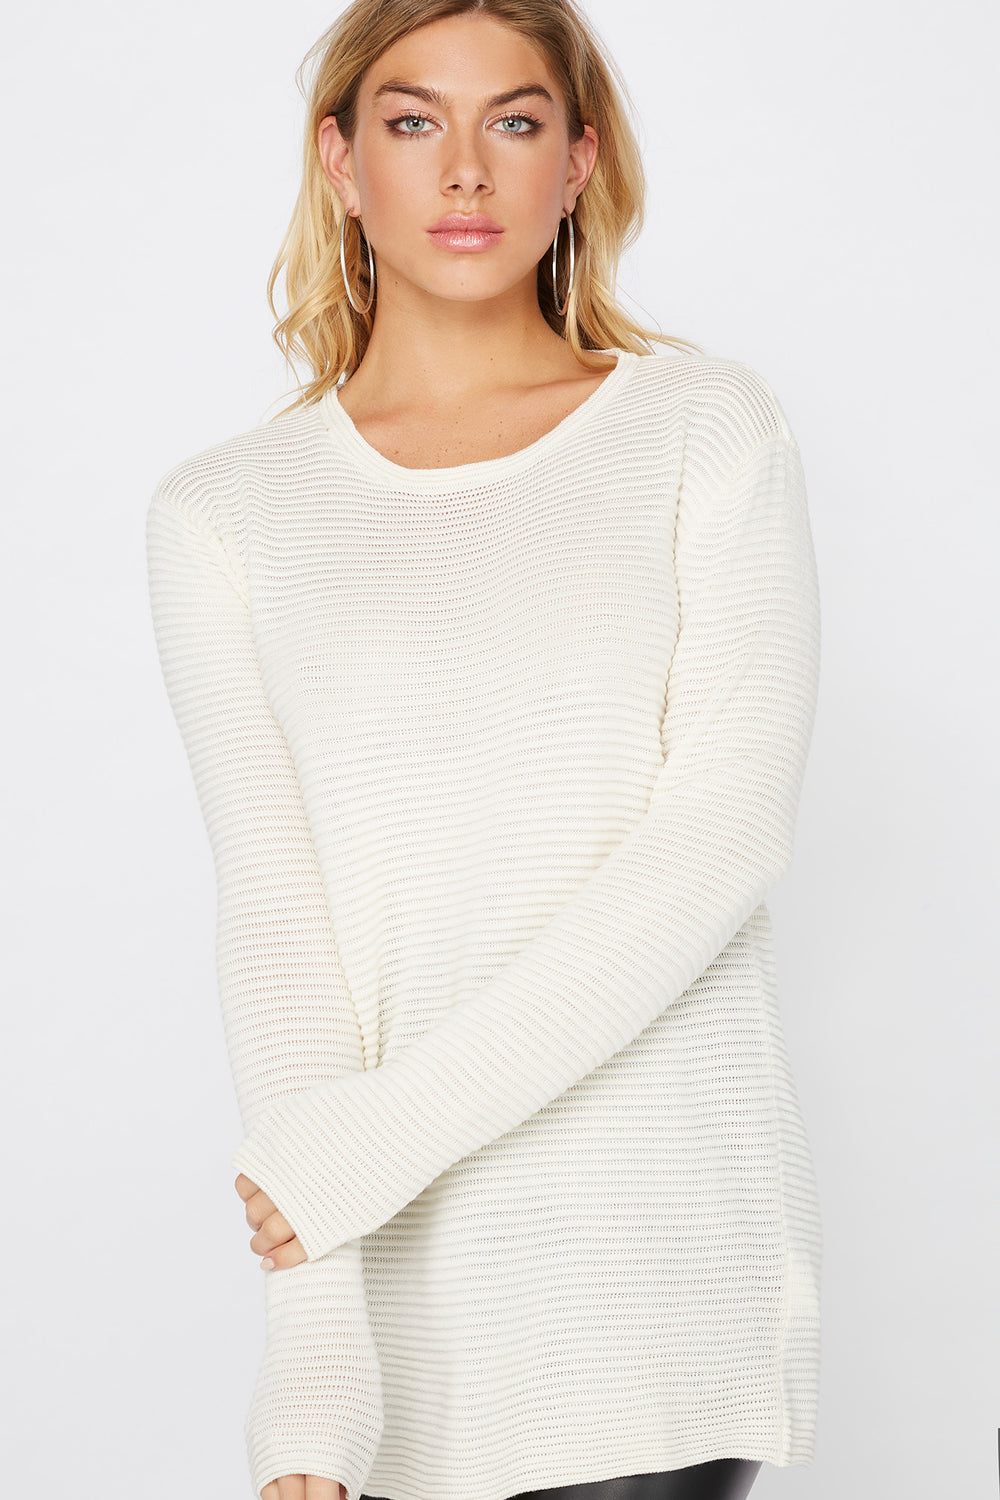 Relaxed Ribbed Crewneck Sweater White